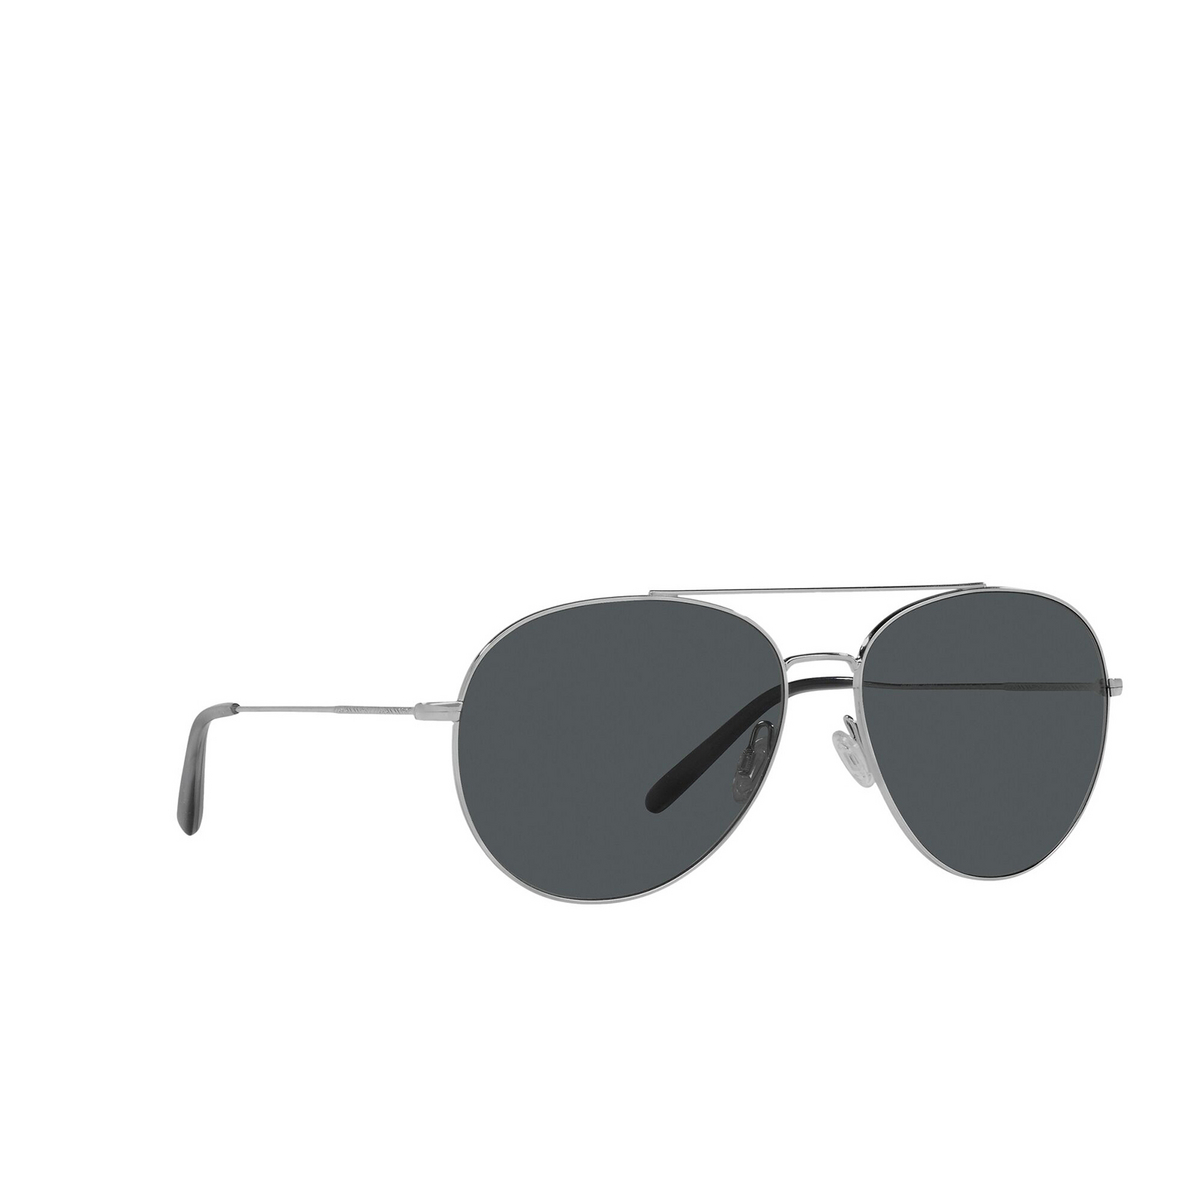 Oliver Peoples® Aviator Sunglasses: Airdale OV1286S color Silver 5036P2 - three-quarters view.